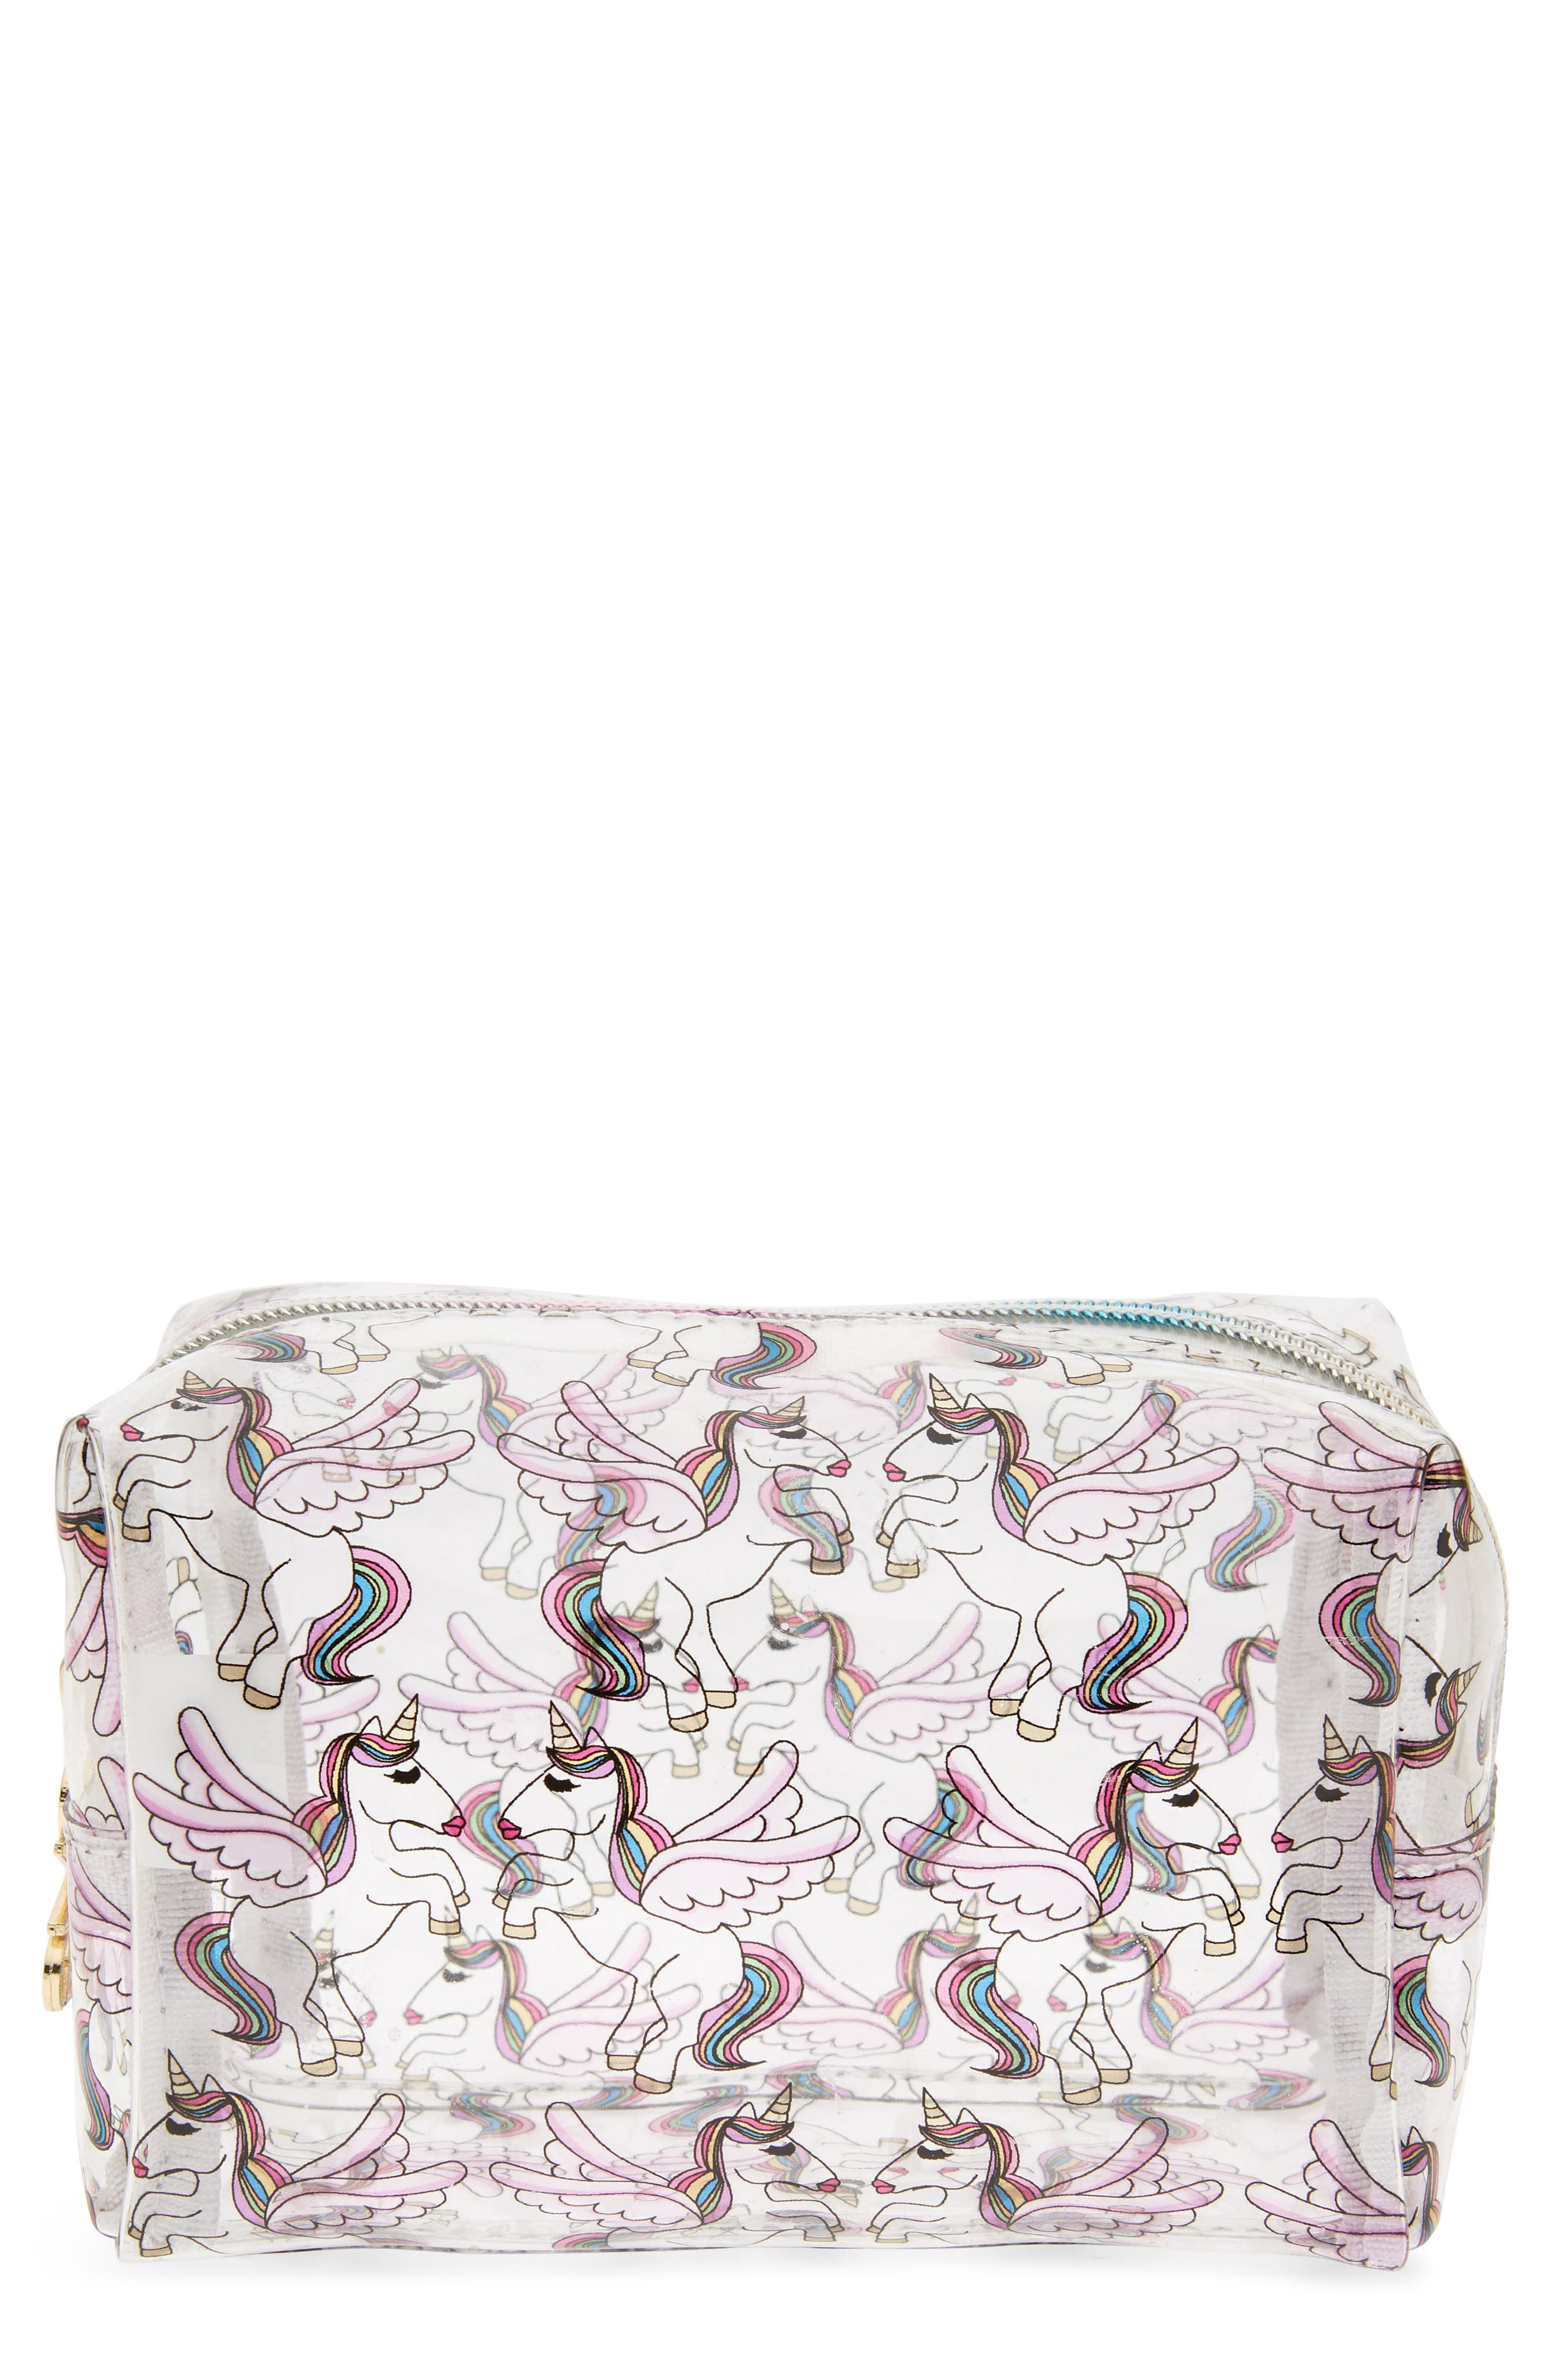 Unicorn Cosmetics Case,                             Main thumbnail 1, color,                             Multi